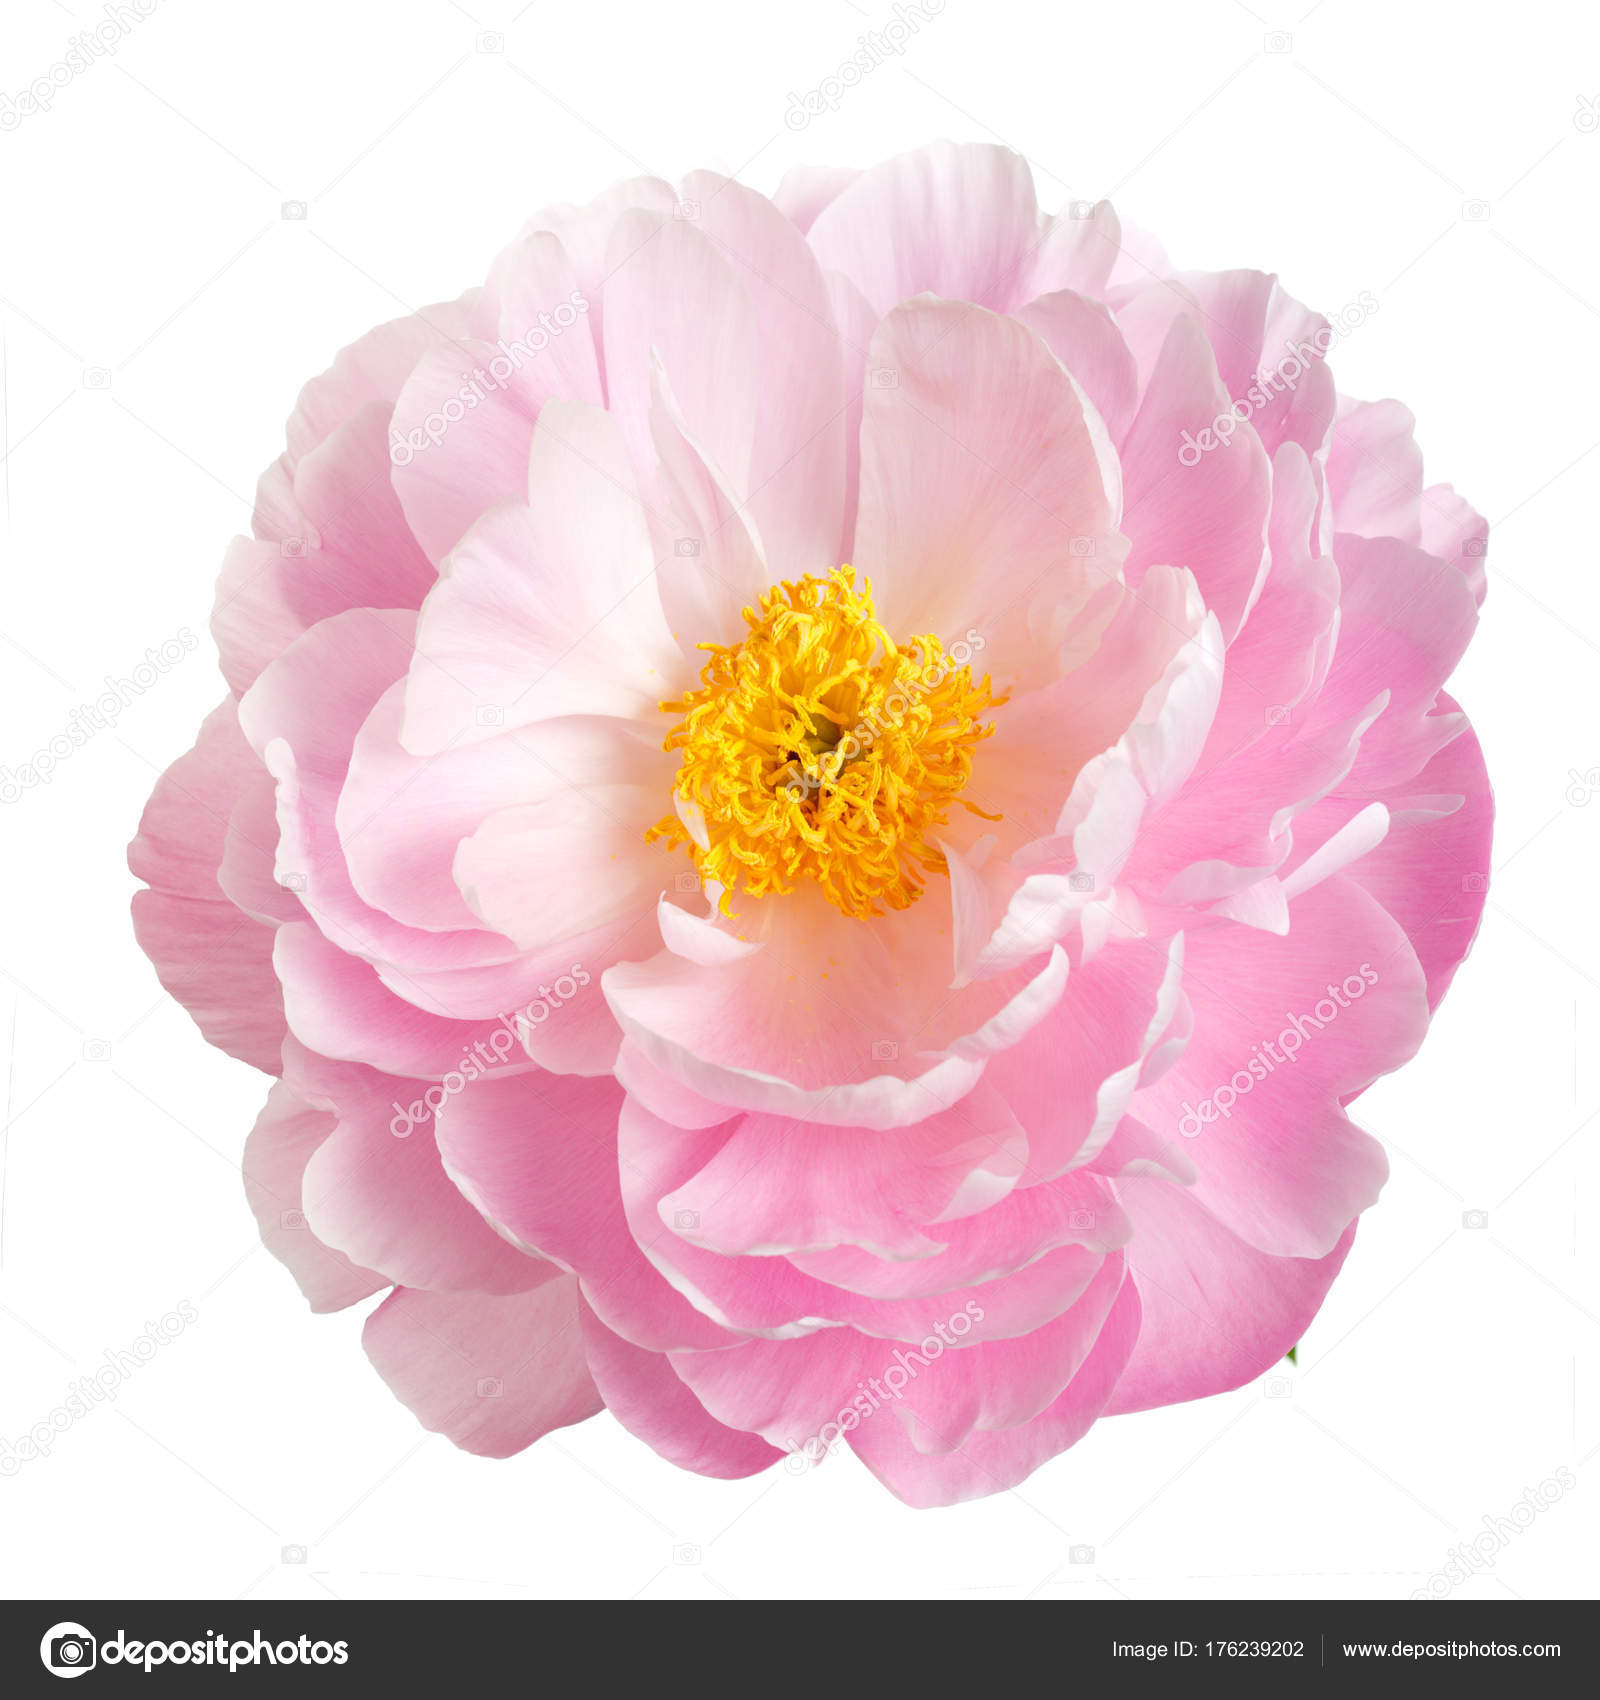 Pink Peony Flower Yellow Stamens Isolated White Background Stock